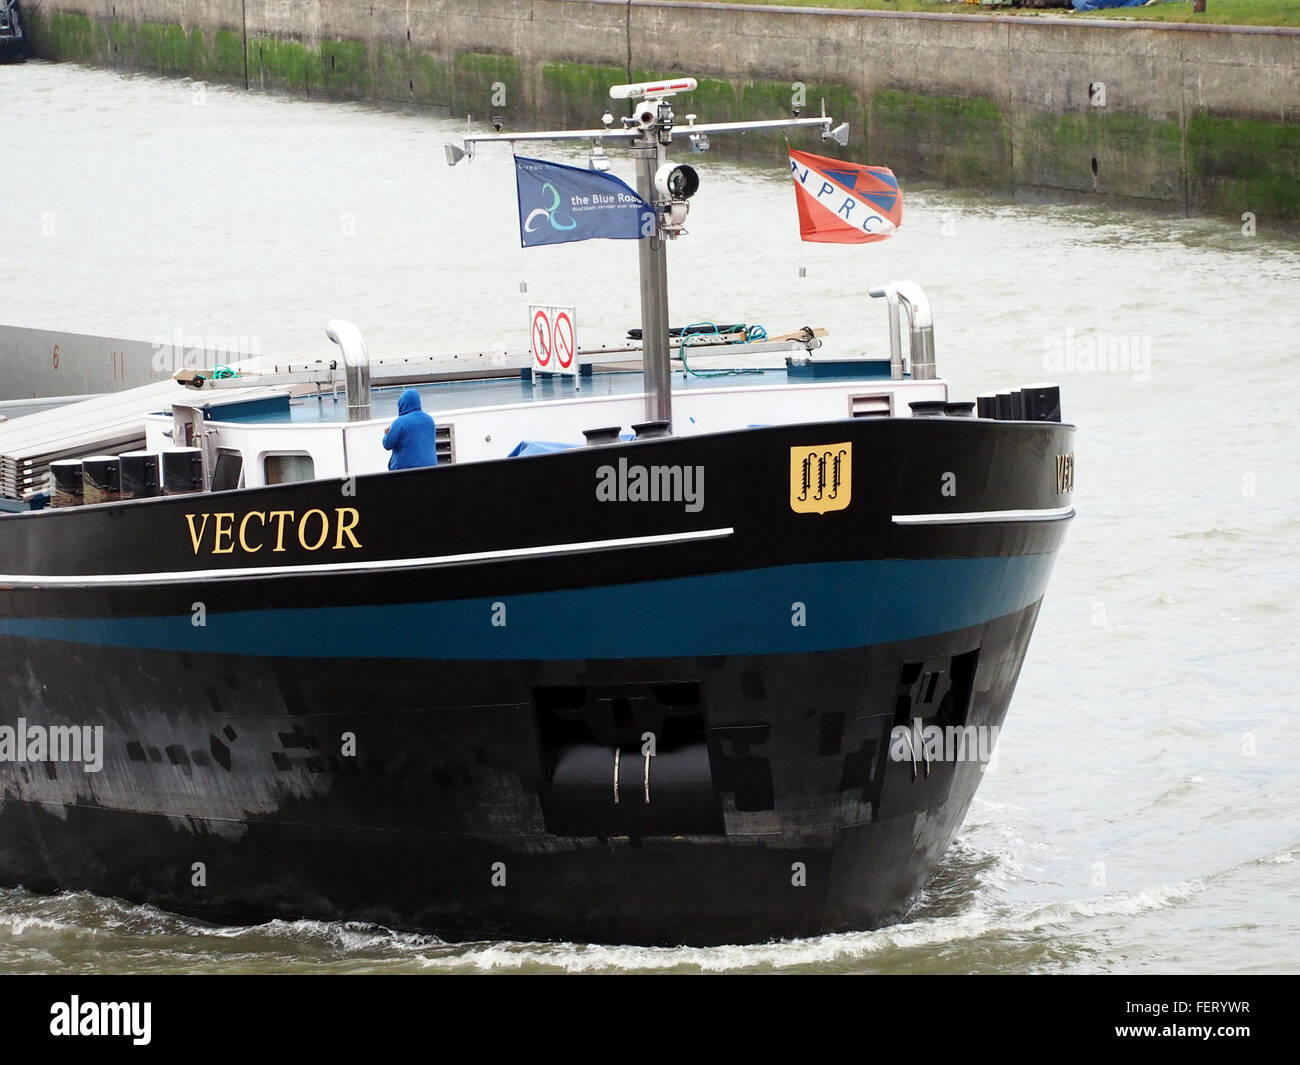 Vector (navire, 2008), l'ENI 02331015 Port d'Anvers pic6 Photo Stock